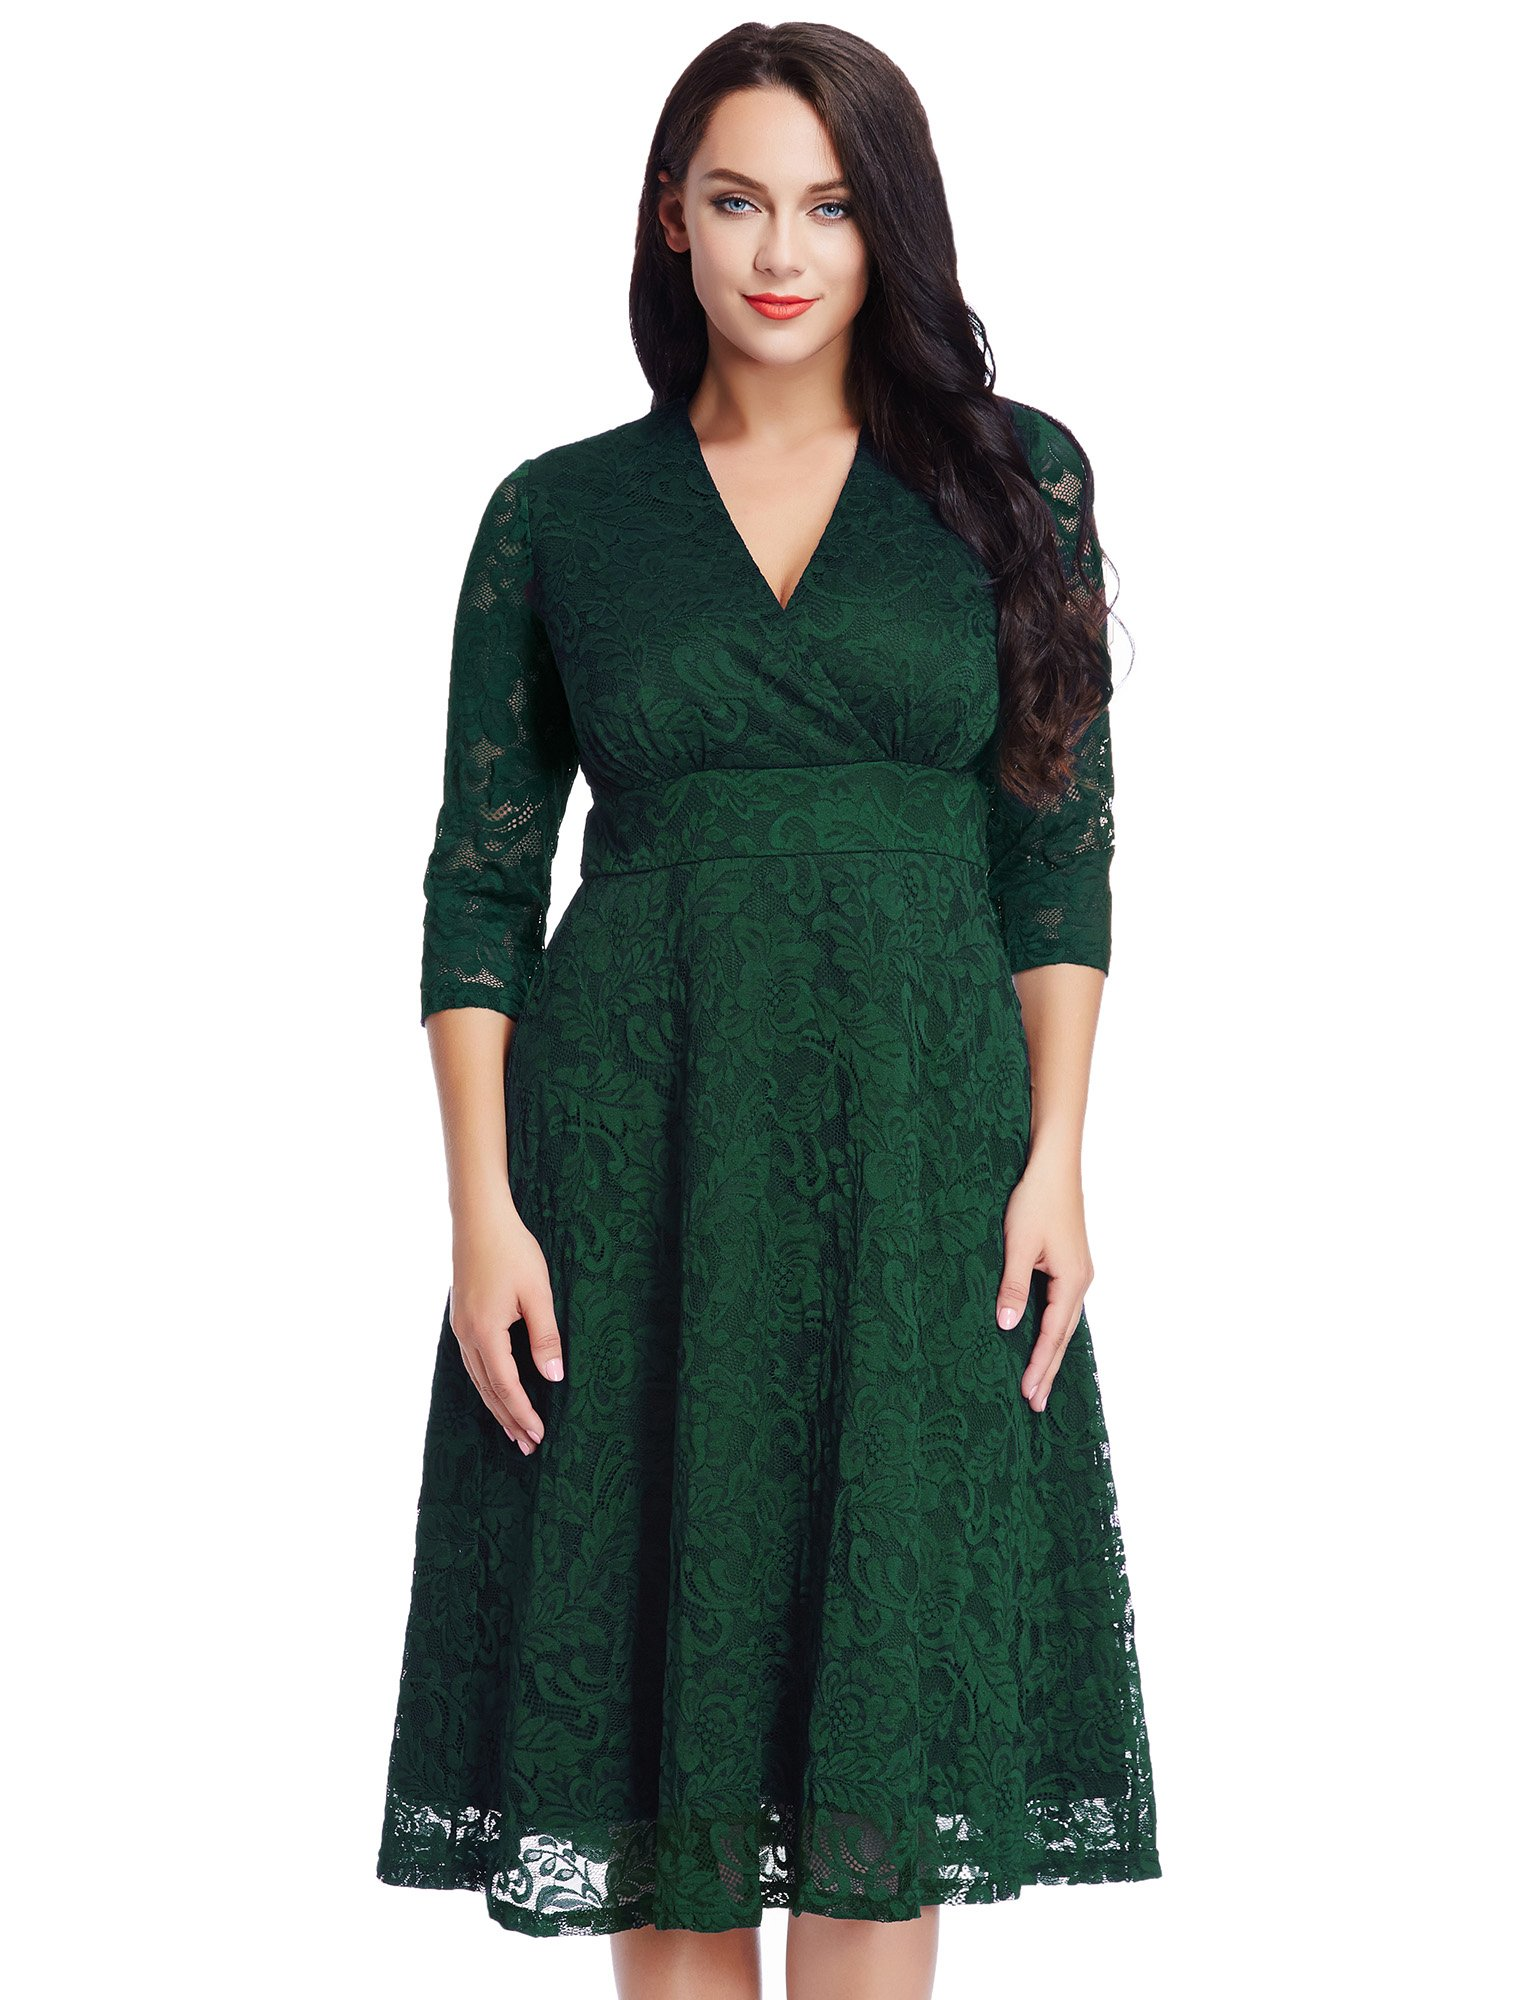 Lookbook Store Women's Green Lace Mother Of The Bride Bridal Empire Dress 20W